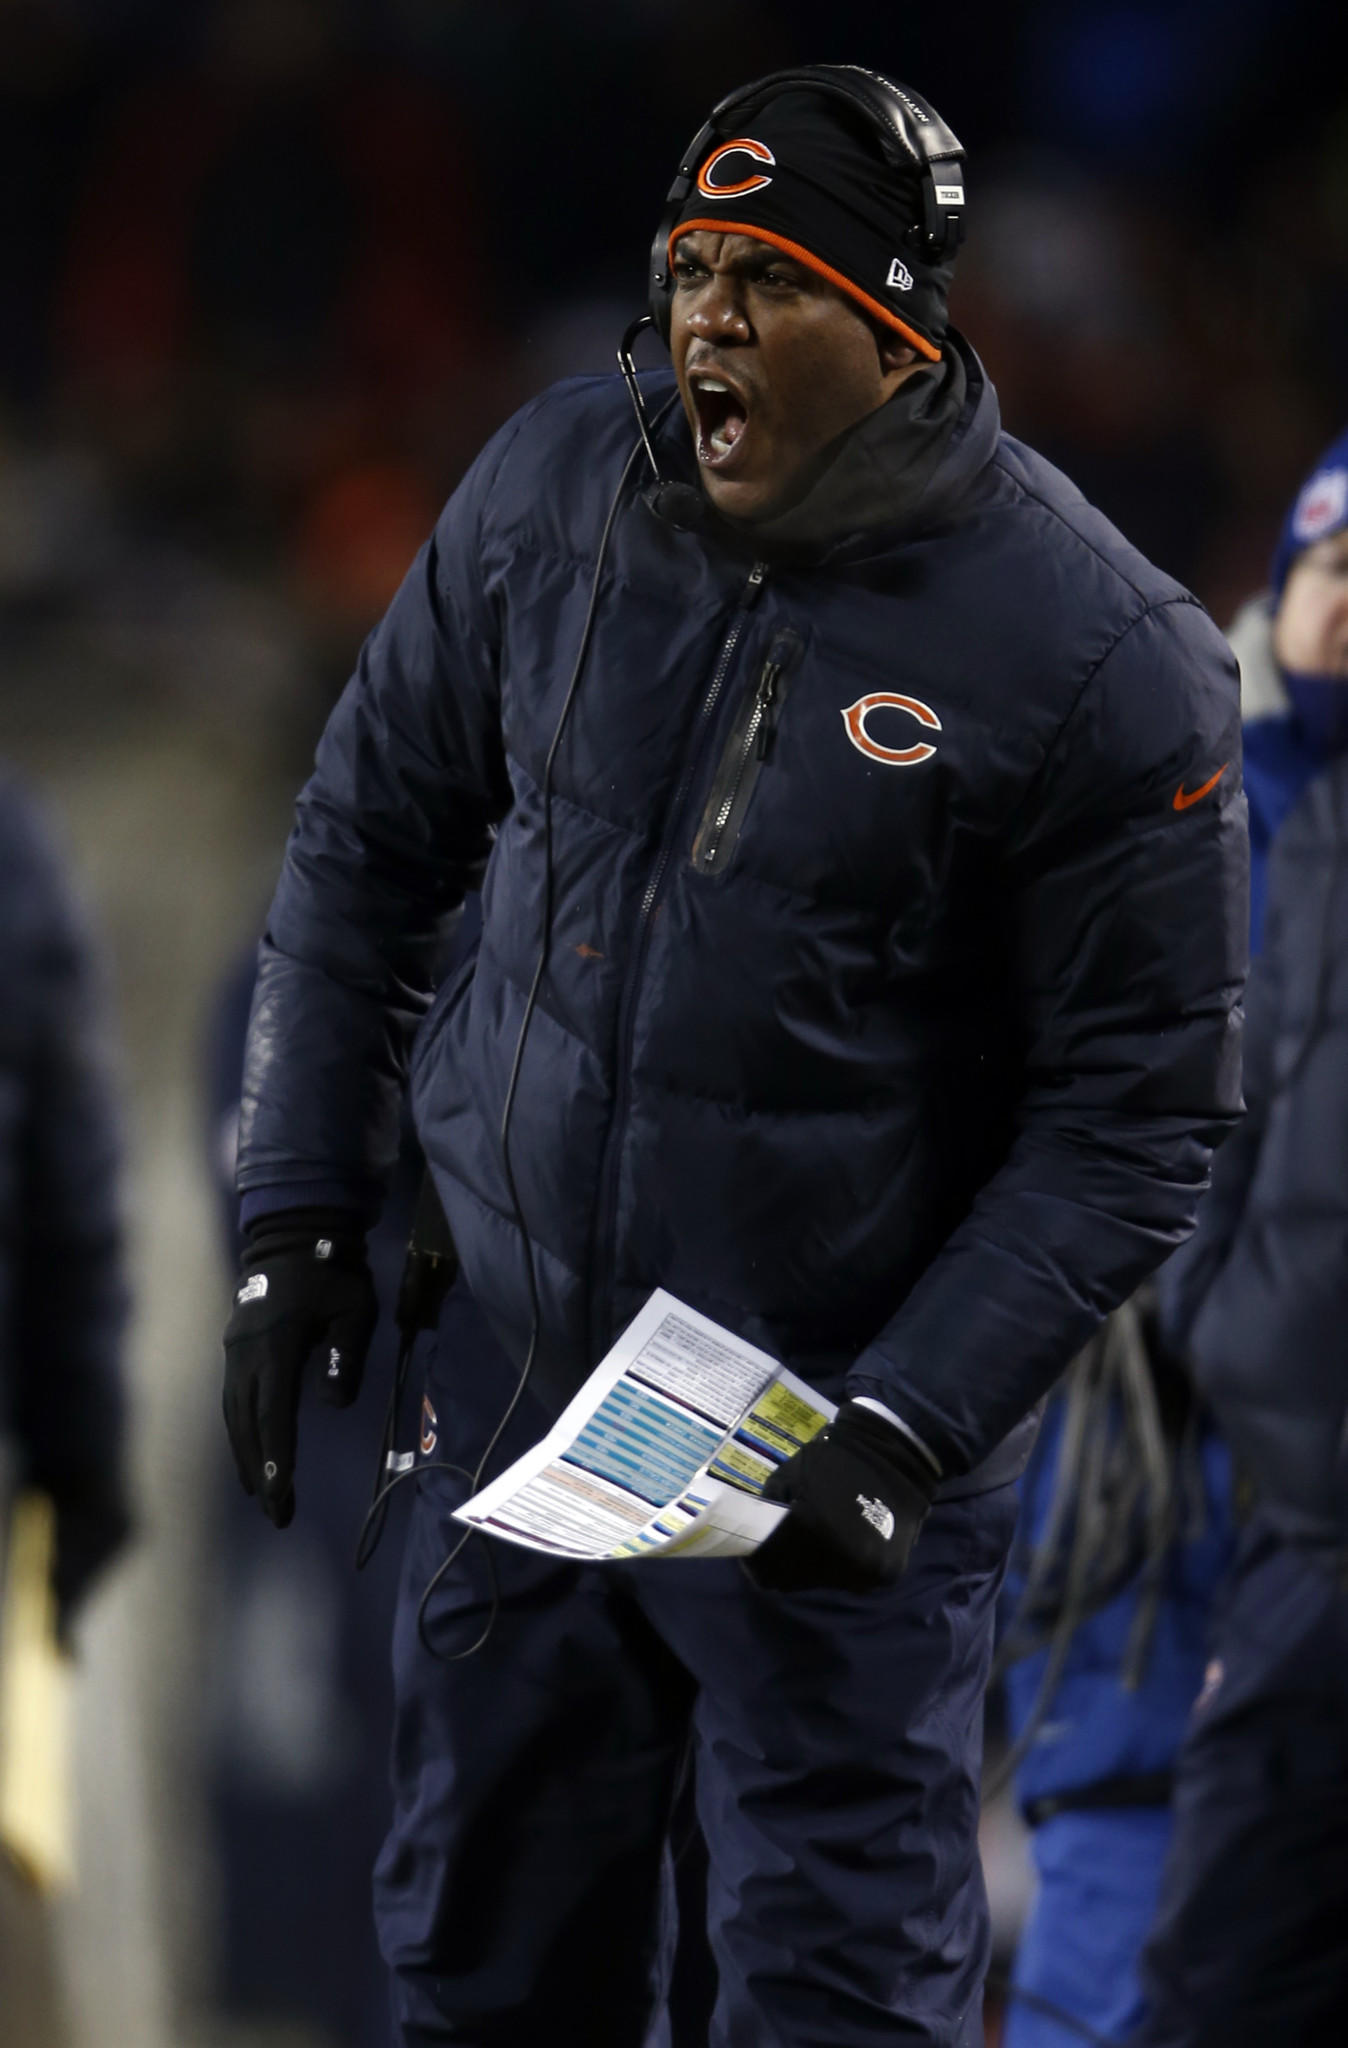 Chicago Bears' defensive coordinator Mel Tucker in 4th quarter of 45-28 win over Dallas Cowboys.